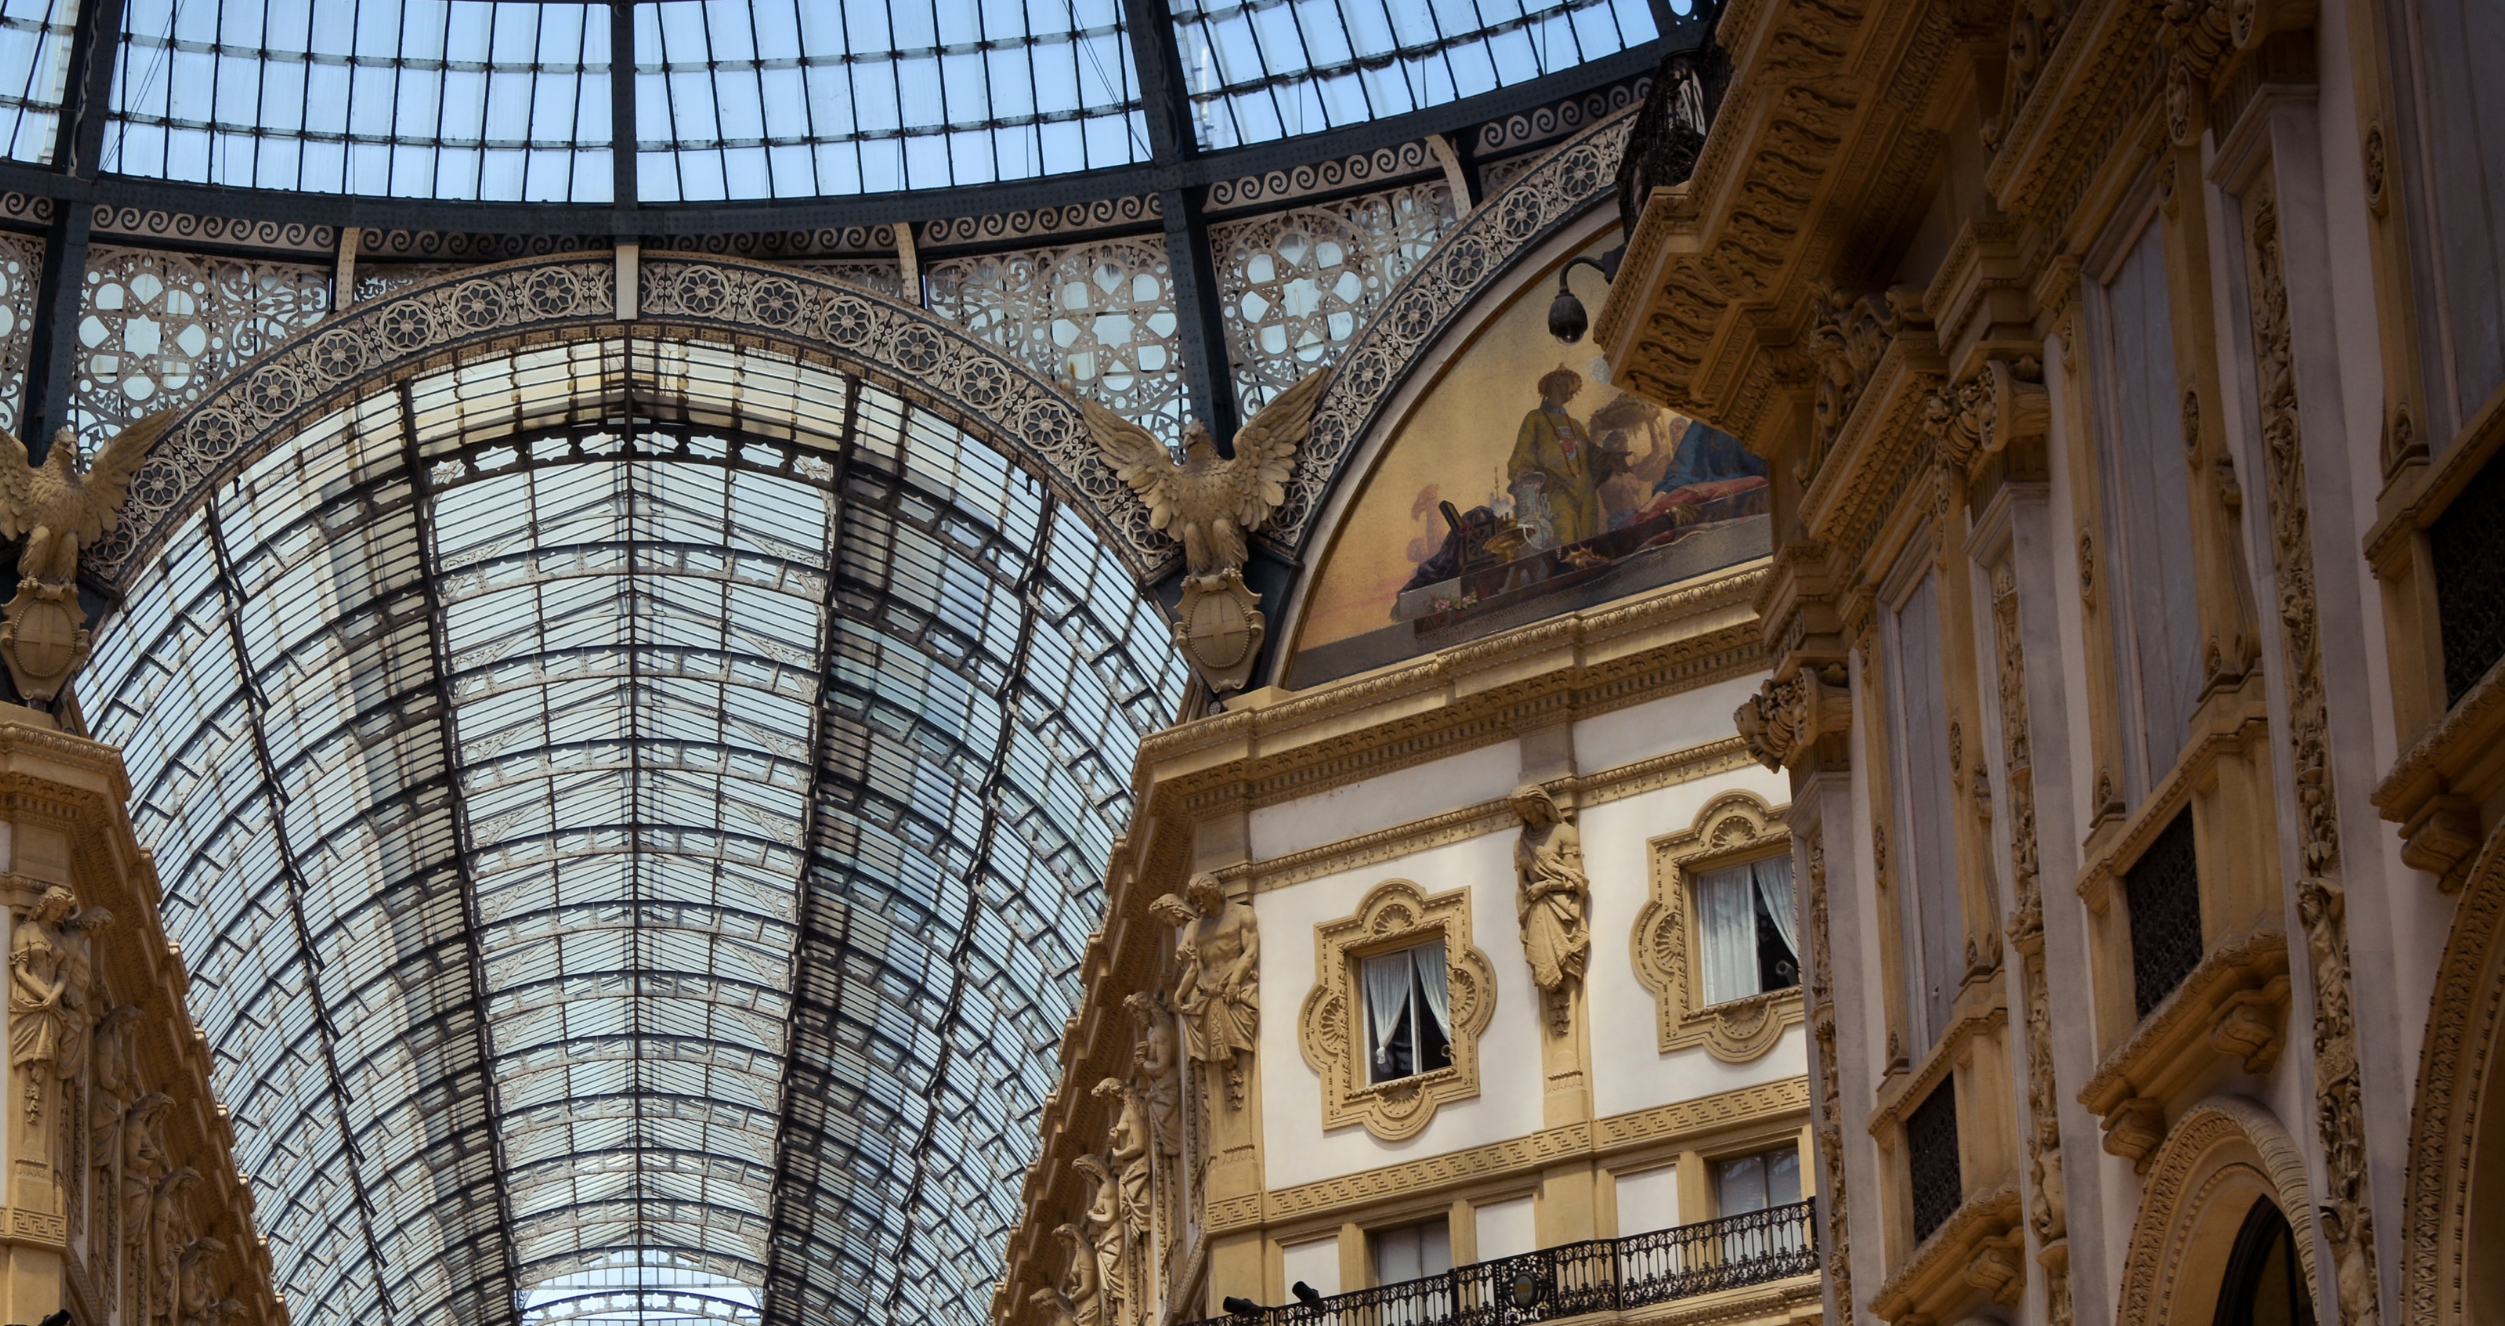 An architectural feature in Milan